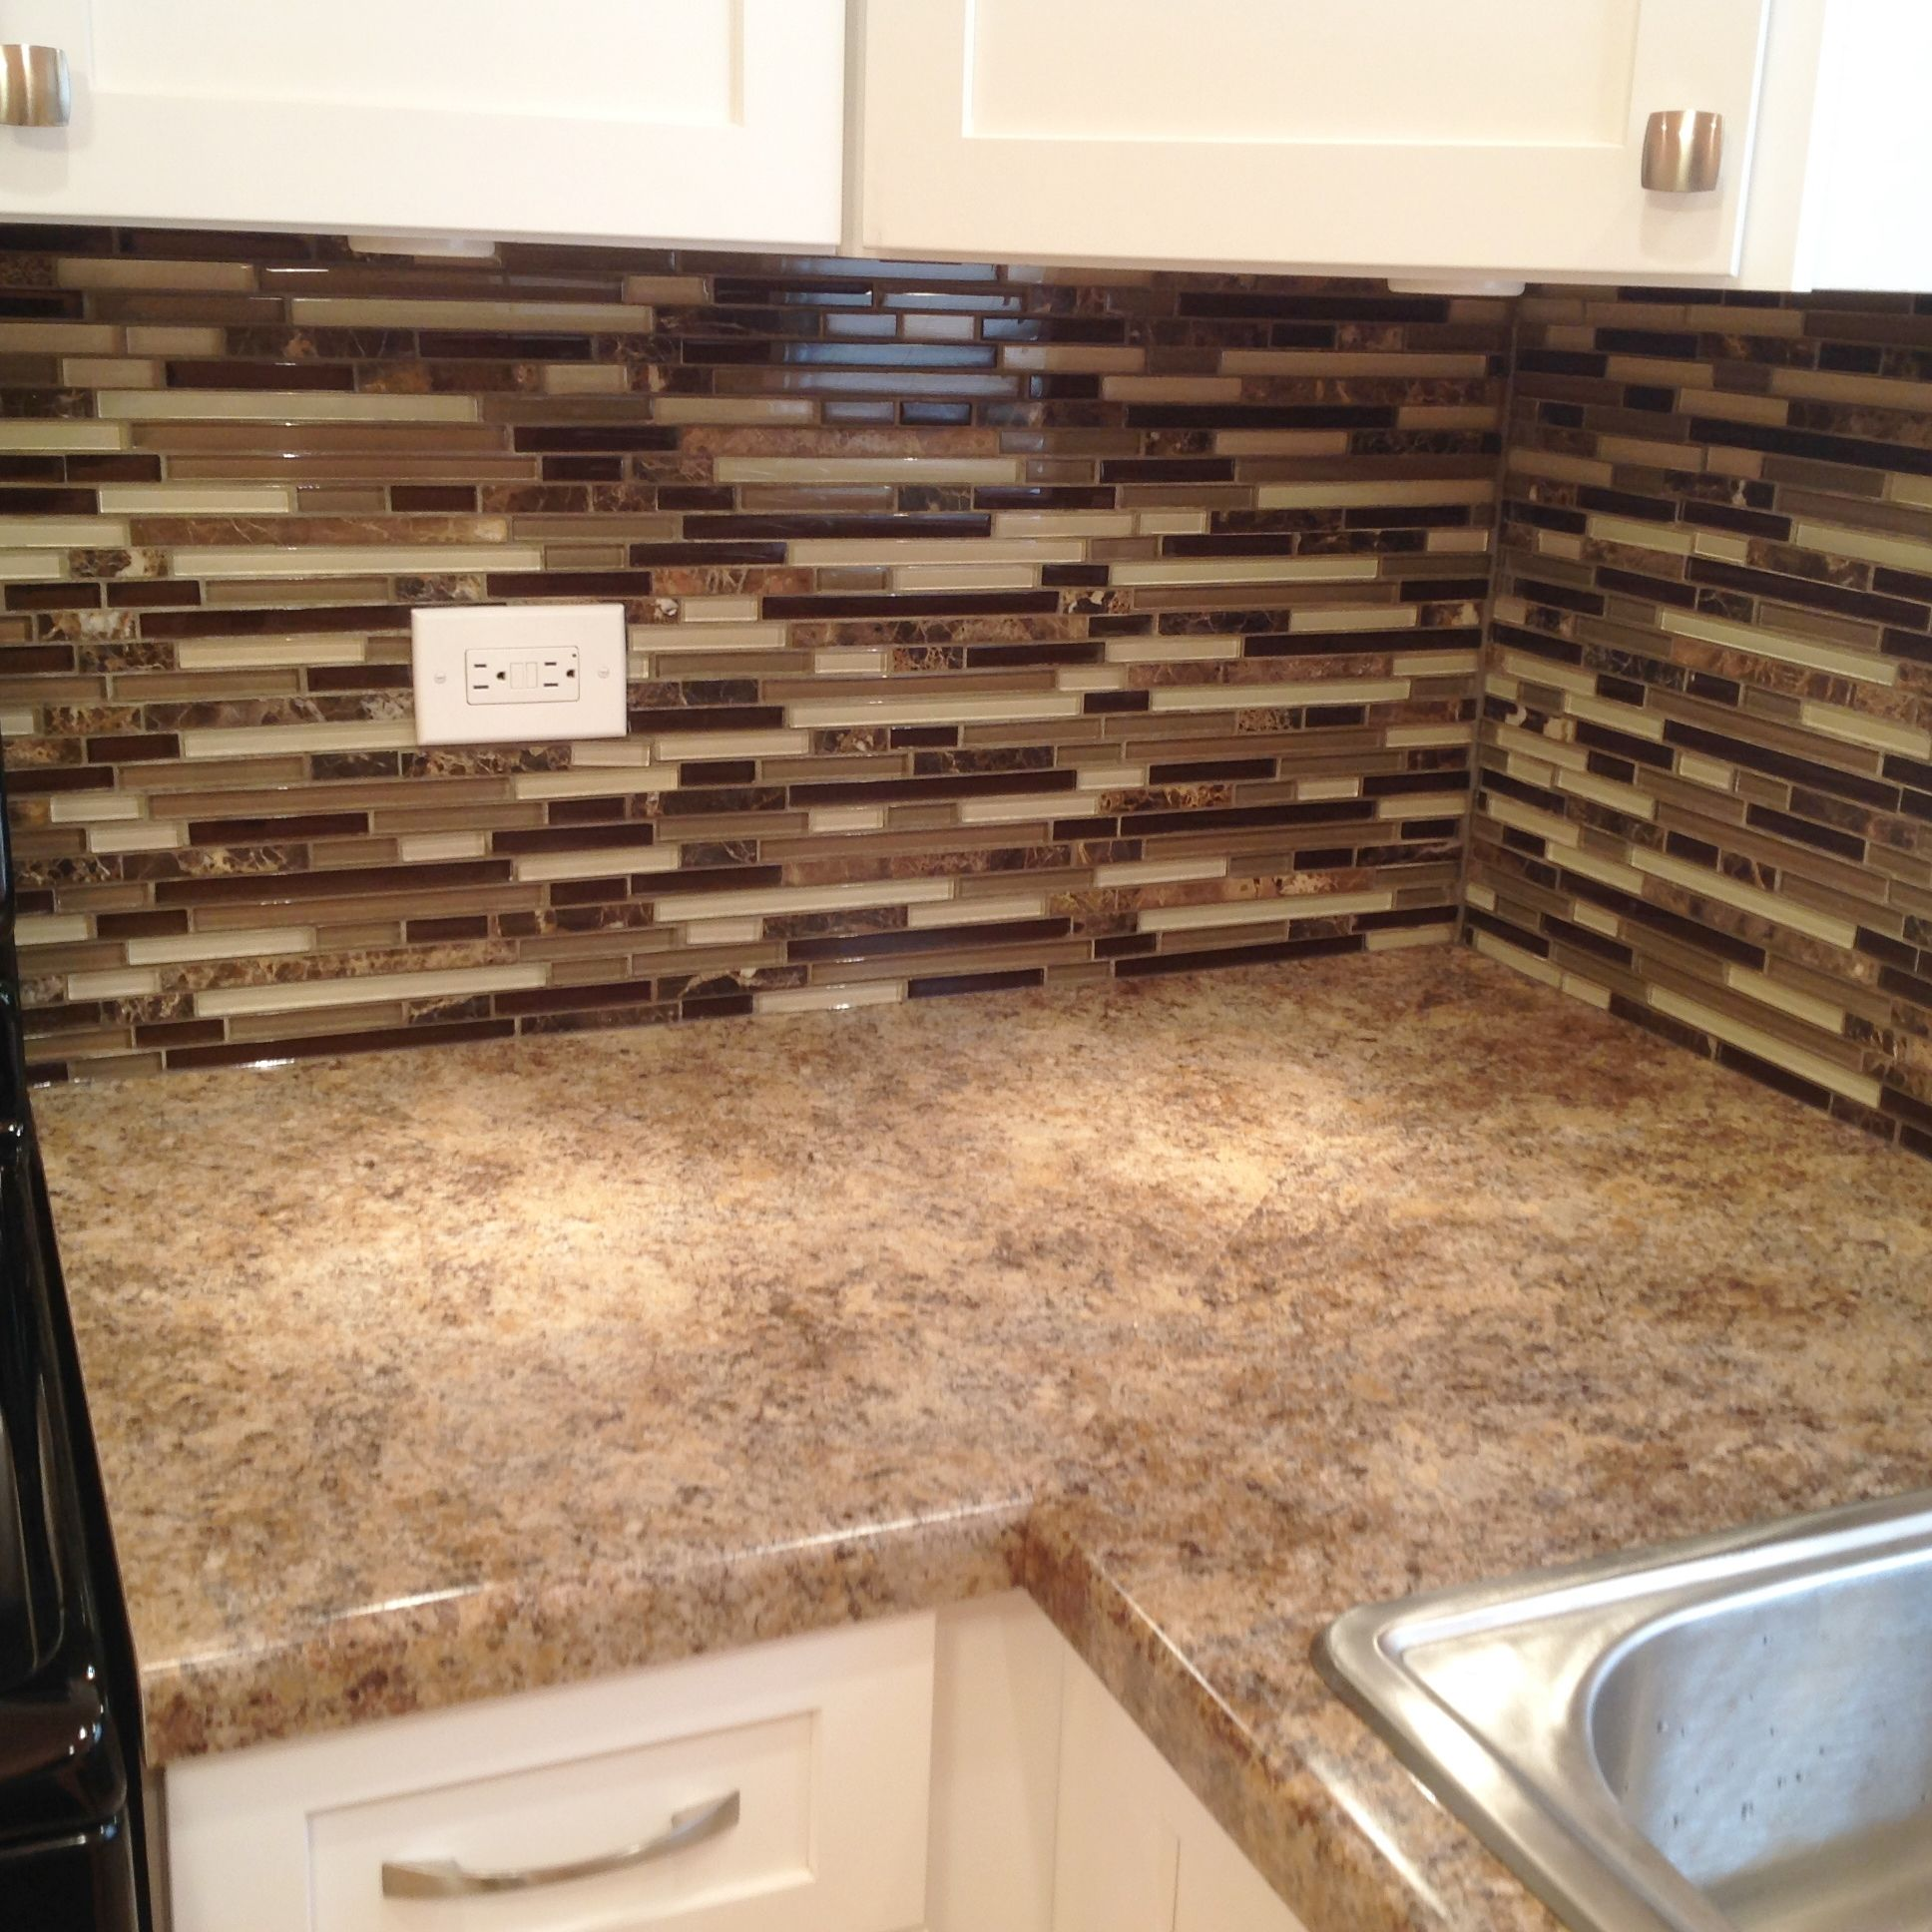 Formica Laminate Countertops And Glass Tile Backsplash By Archway Home Remodeling Complete Kitchen Remodel Glass Tile Backsplash Glass Tile